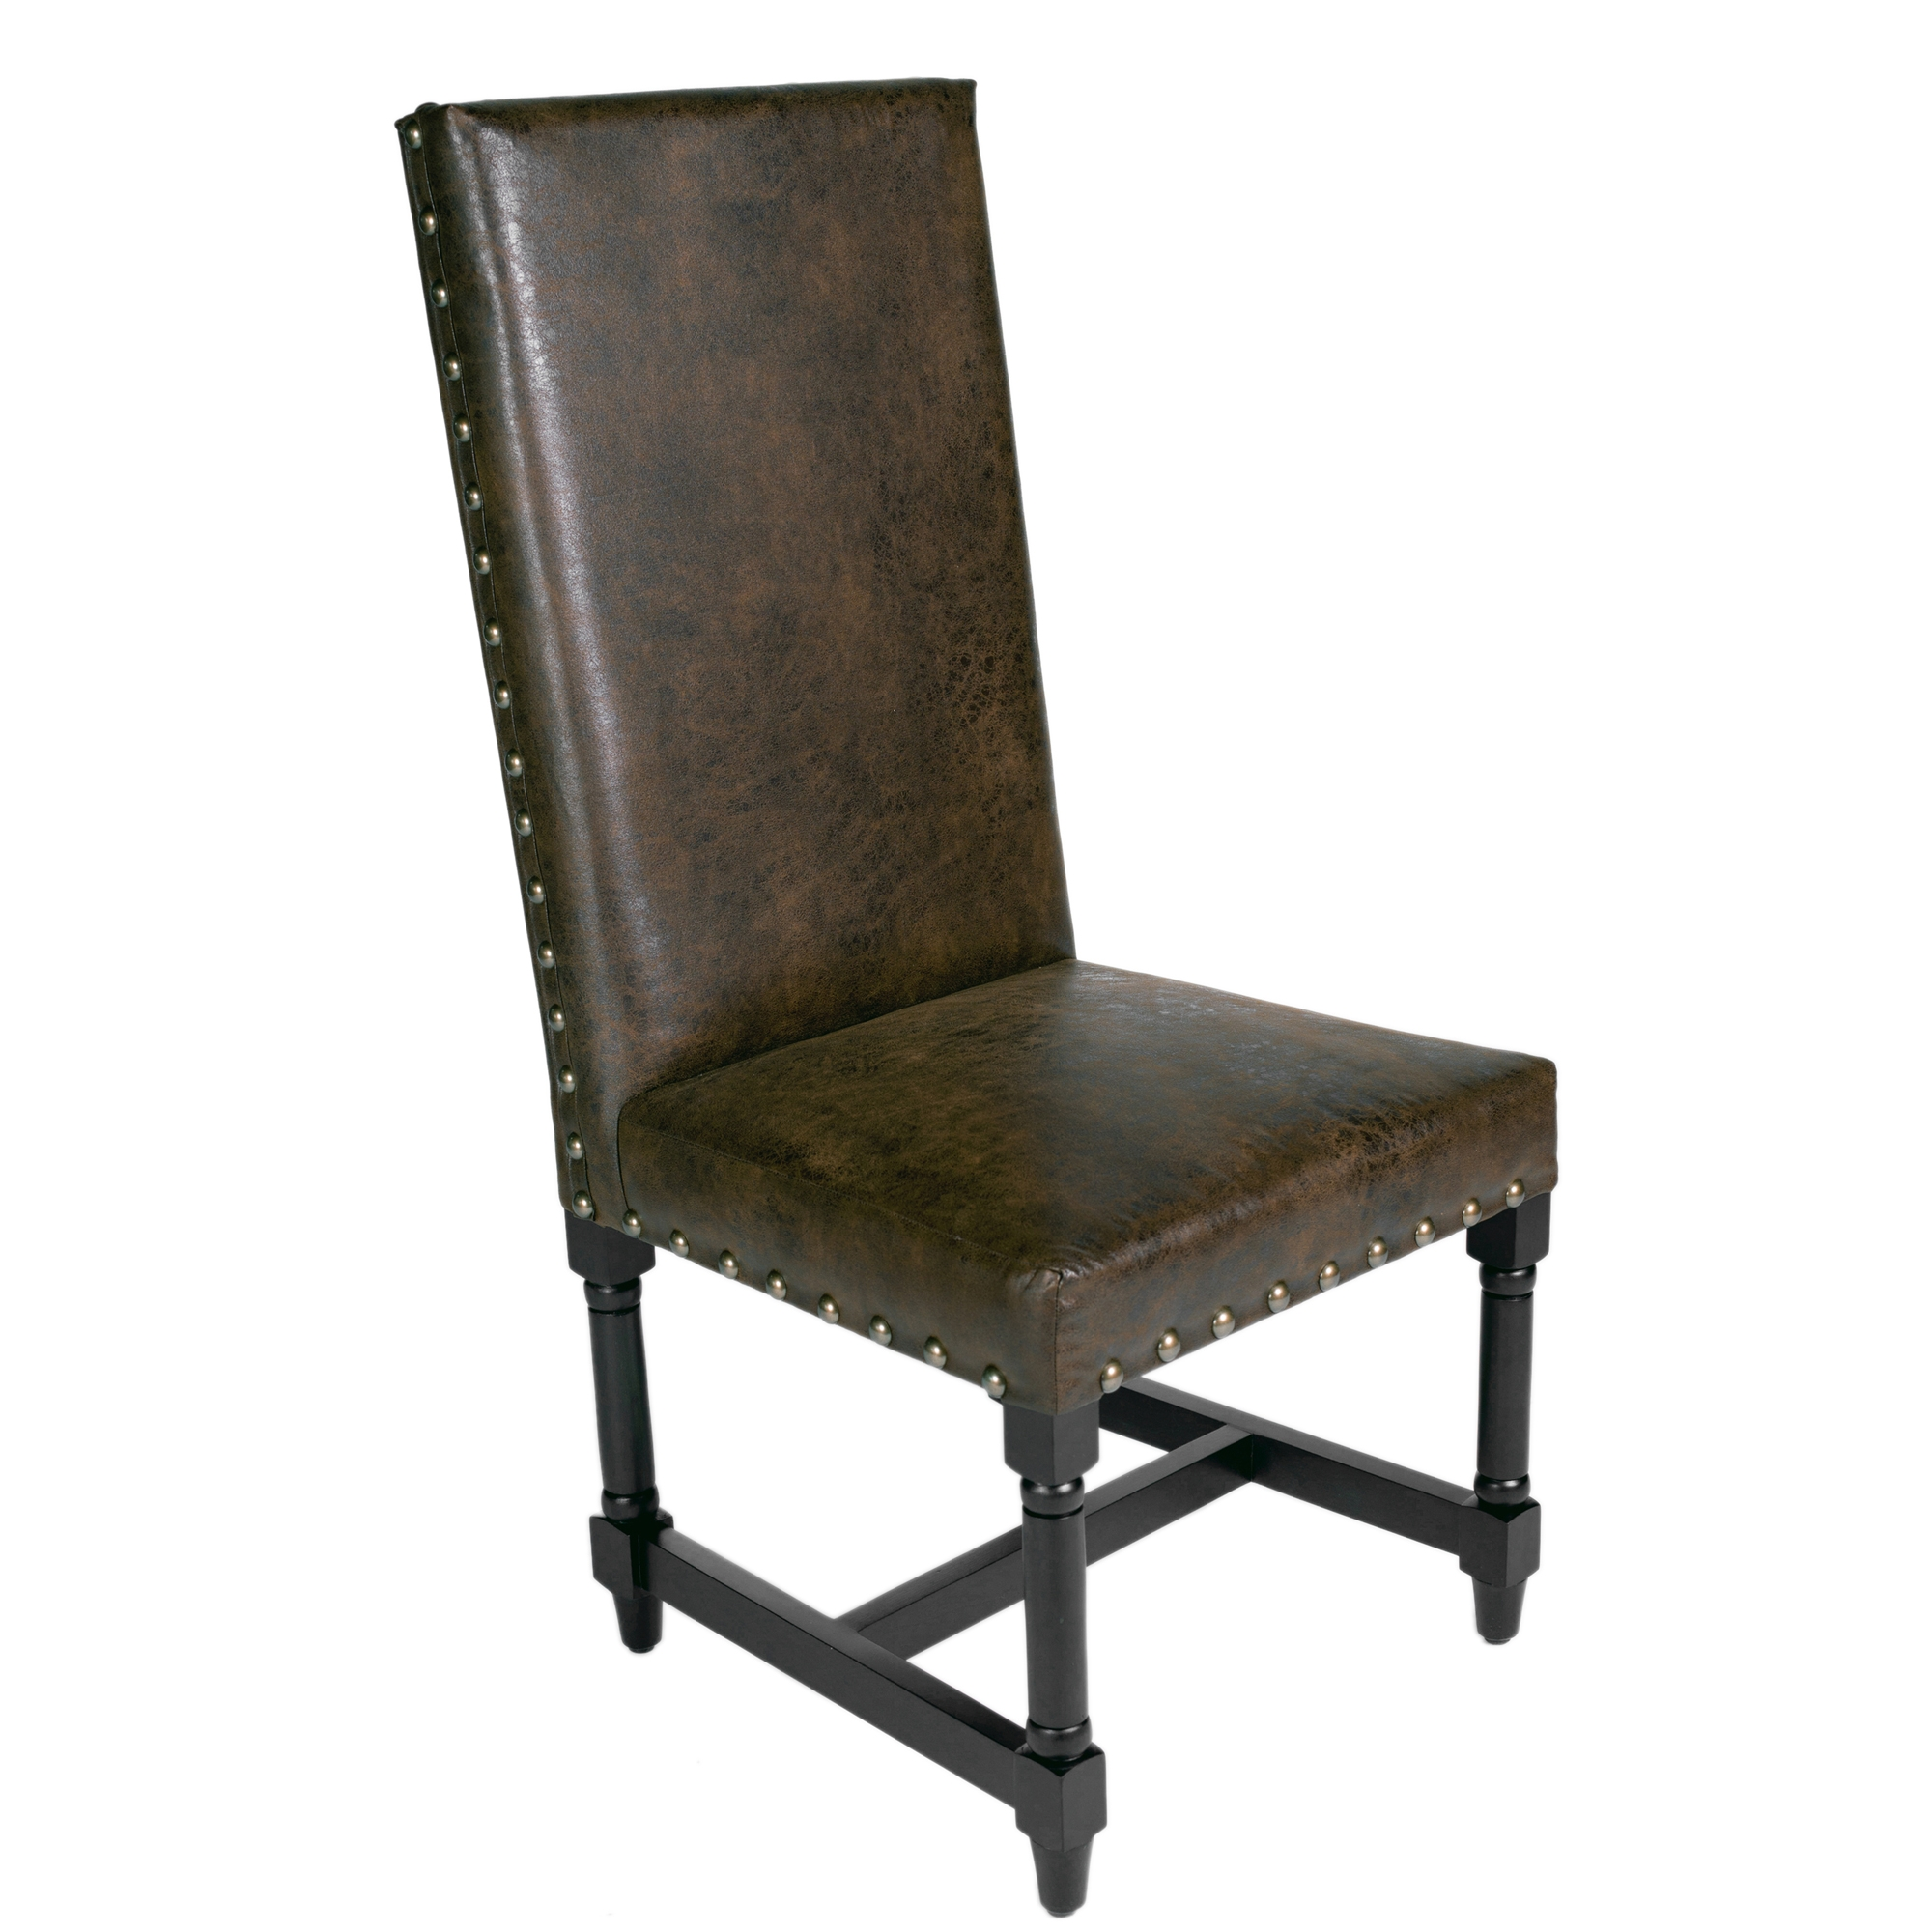 brown leather high back dining chairs folding floor chair uk with nail heads